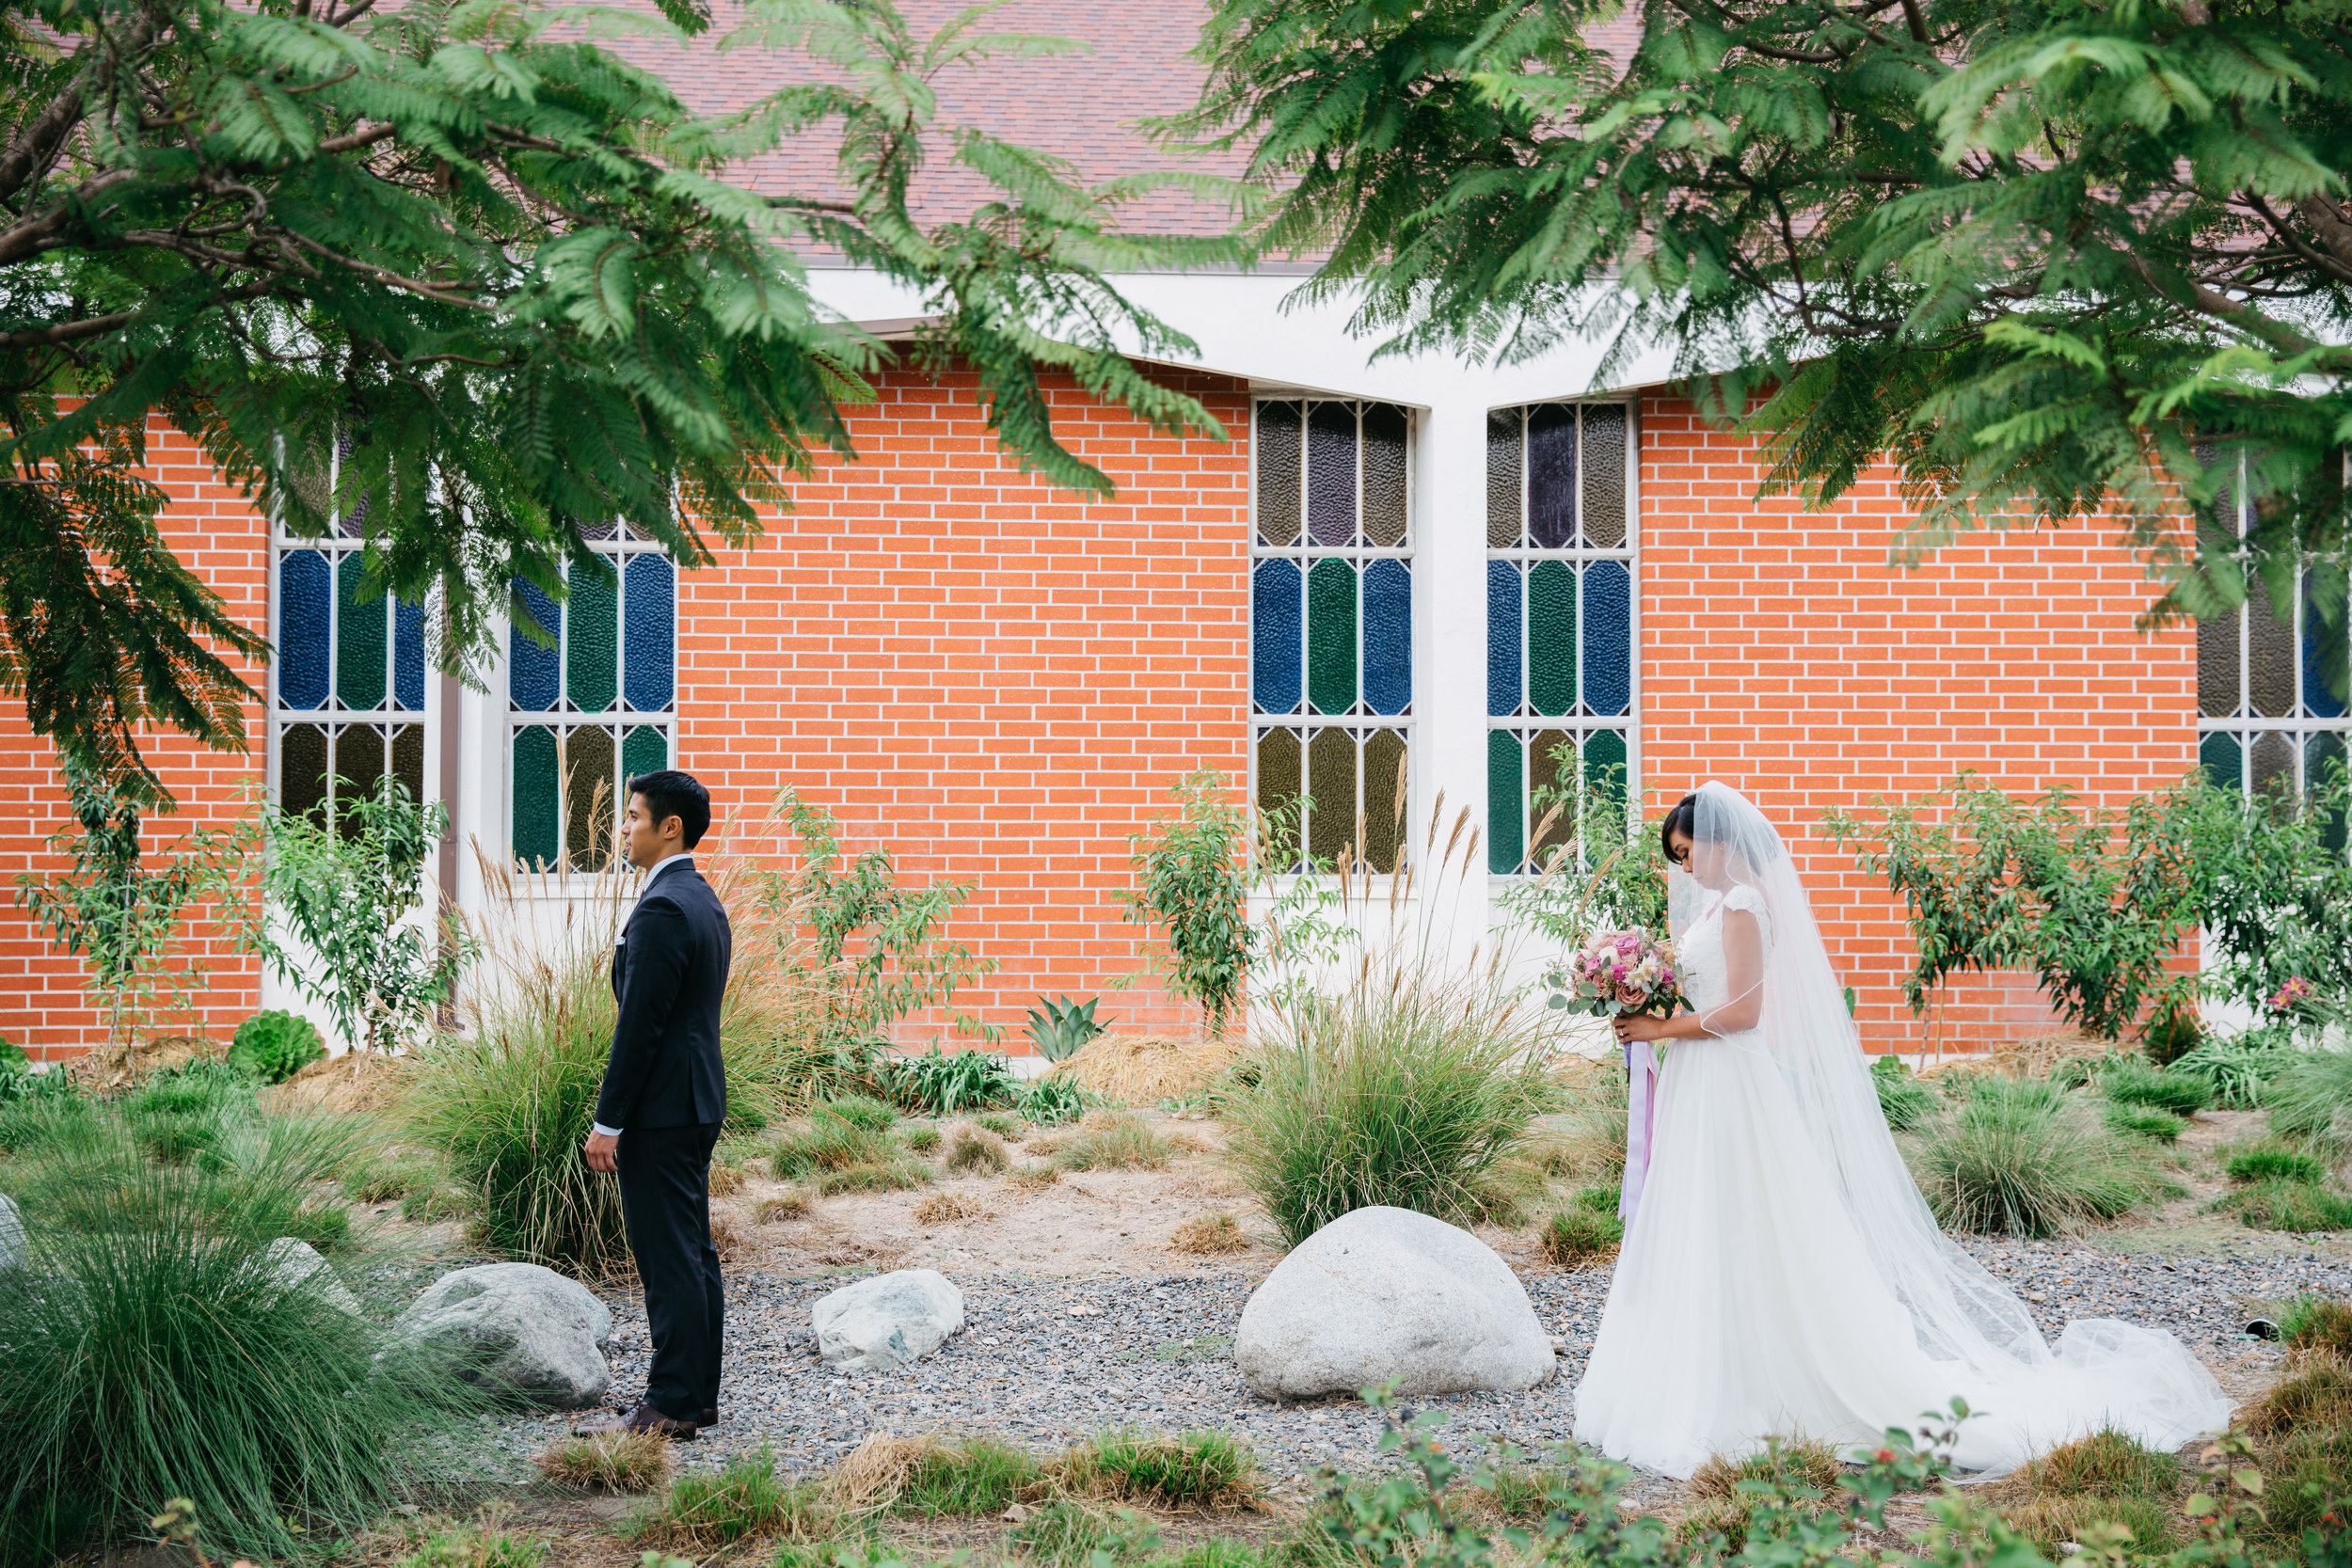 Lyan and Duy 1106.jpg